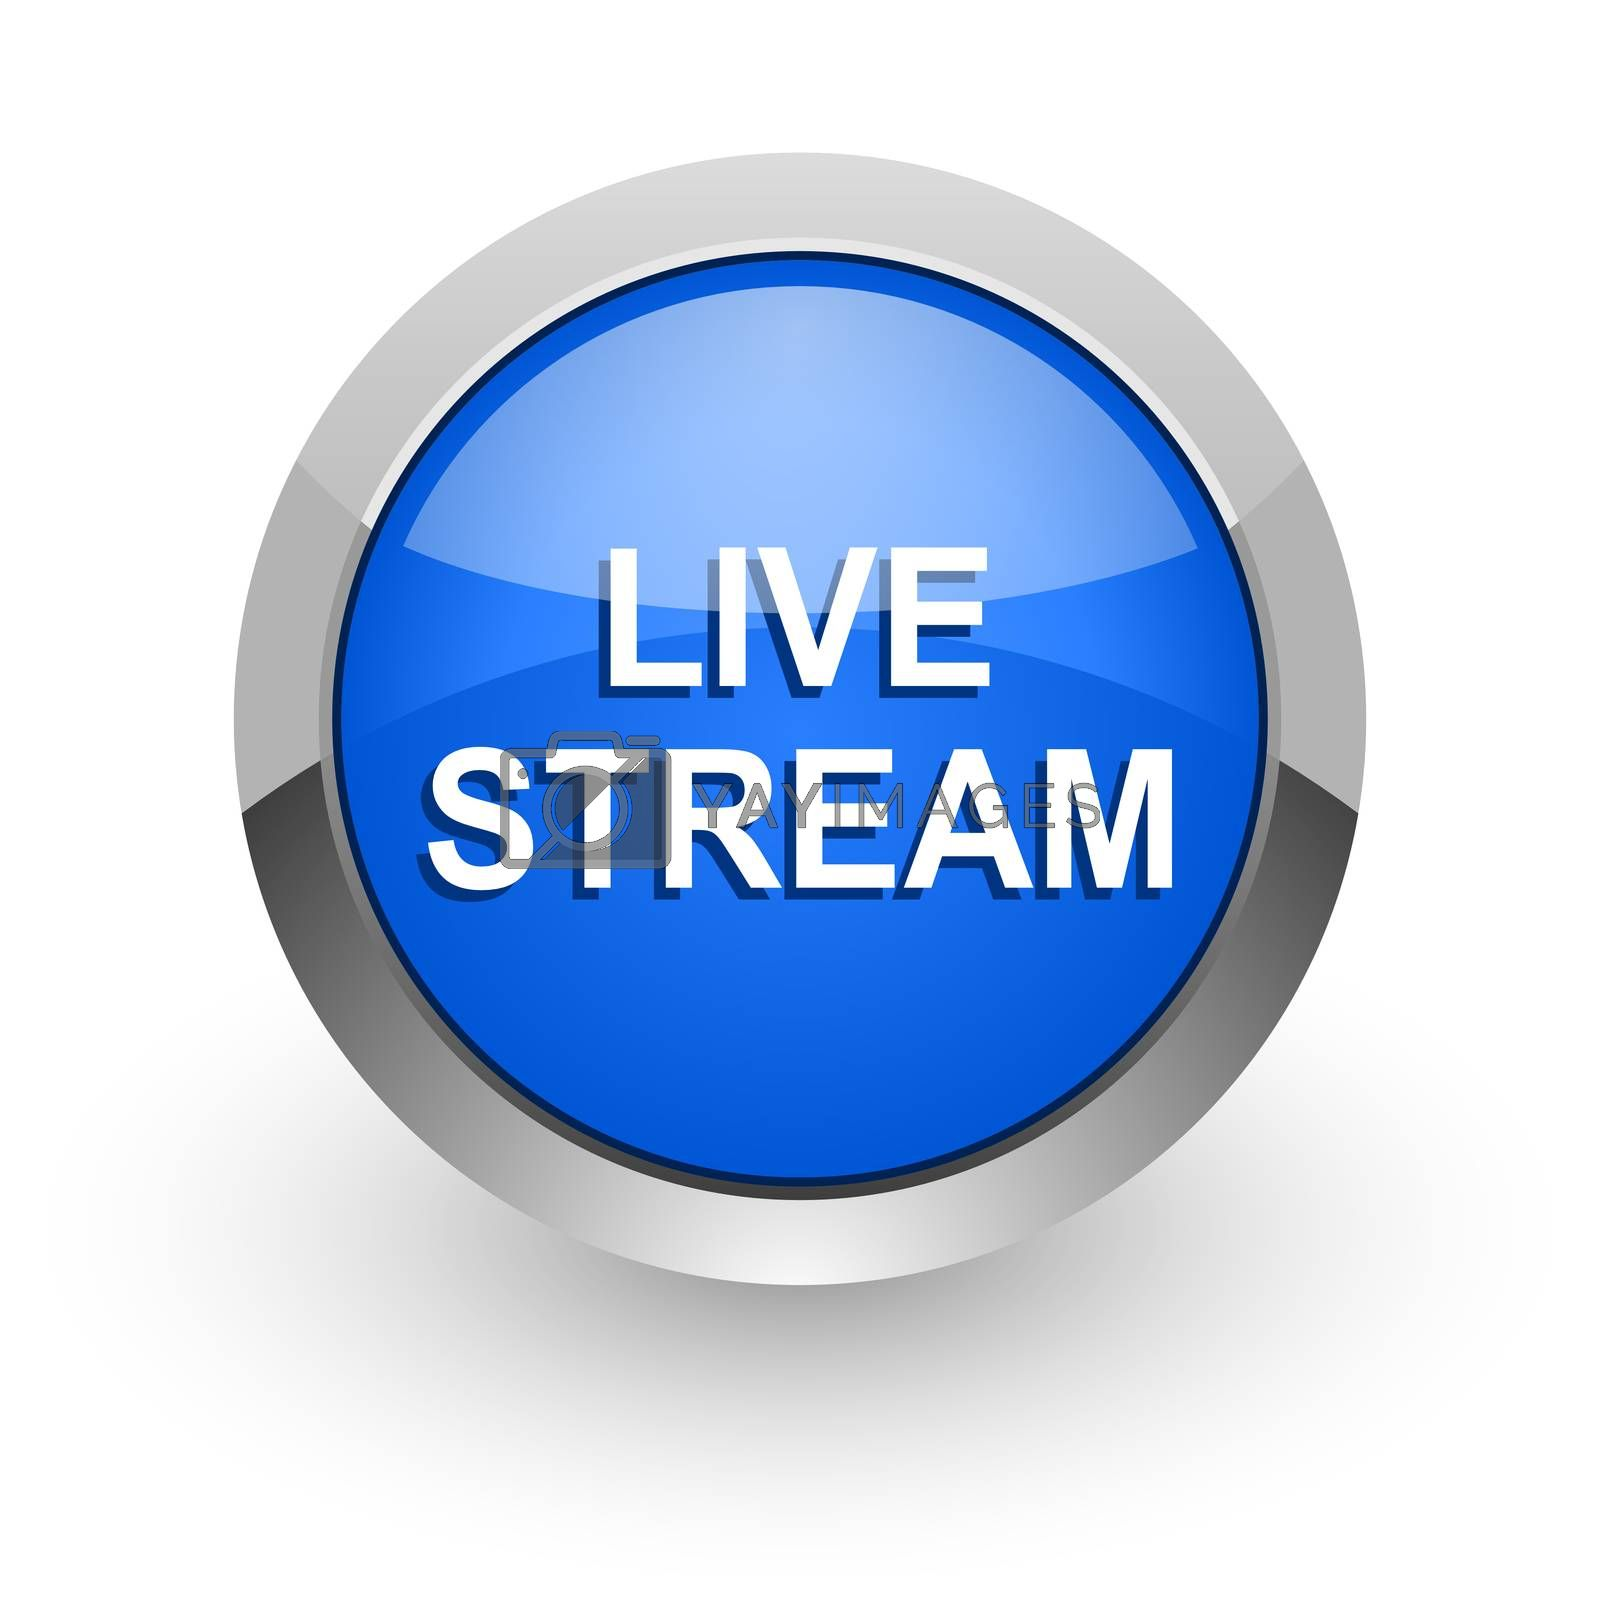 Royalty free image of live stream blue glossy web icon by alexwhite